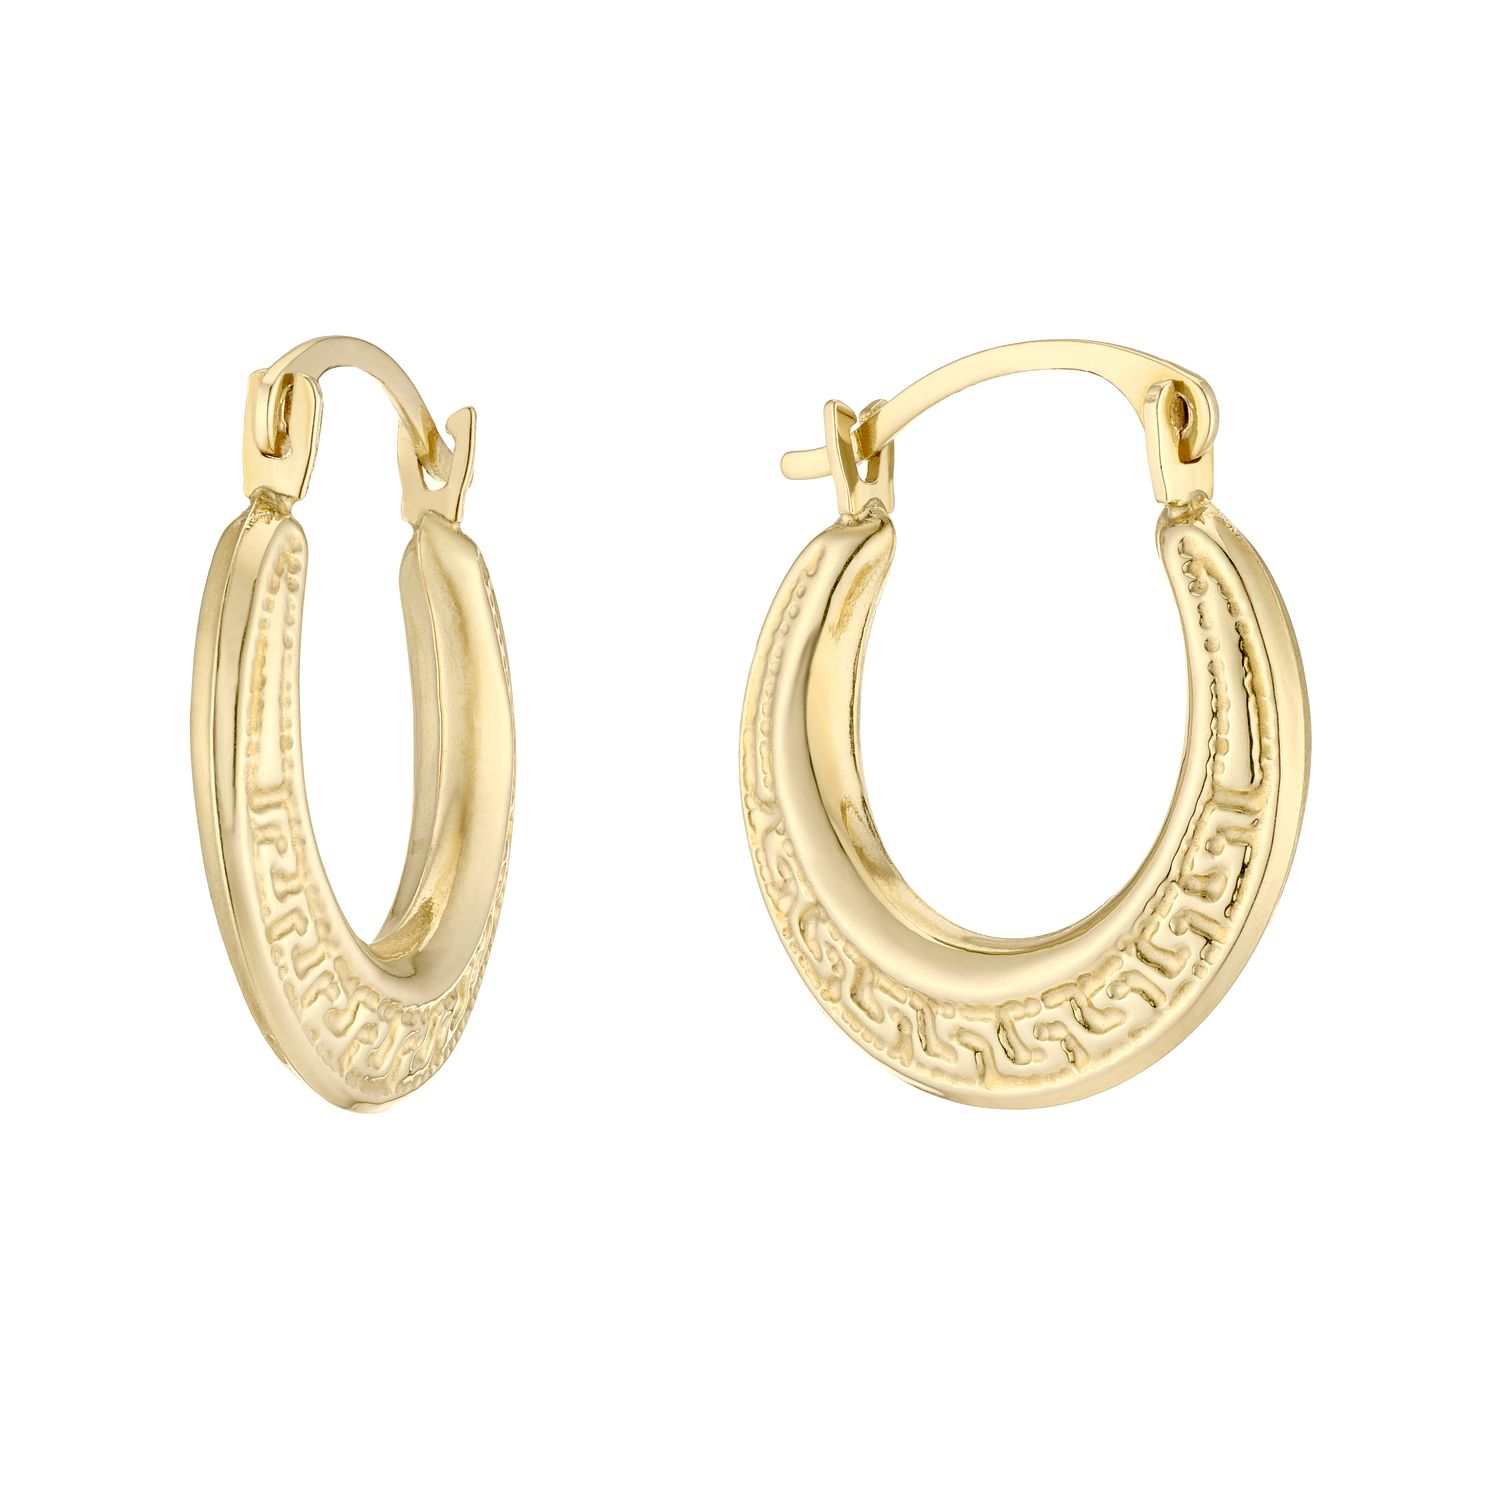 9ct Yellow Gold Textured 10mm Hoop Earrings - Product number 5230403